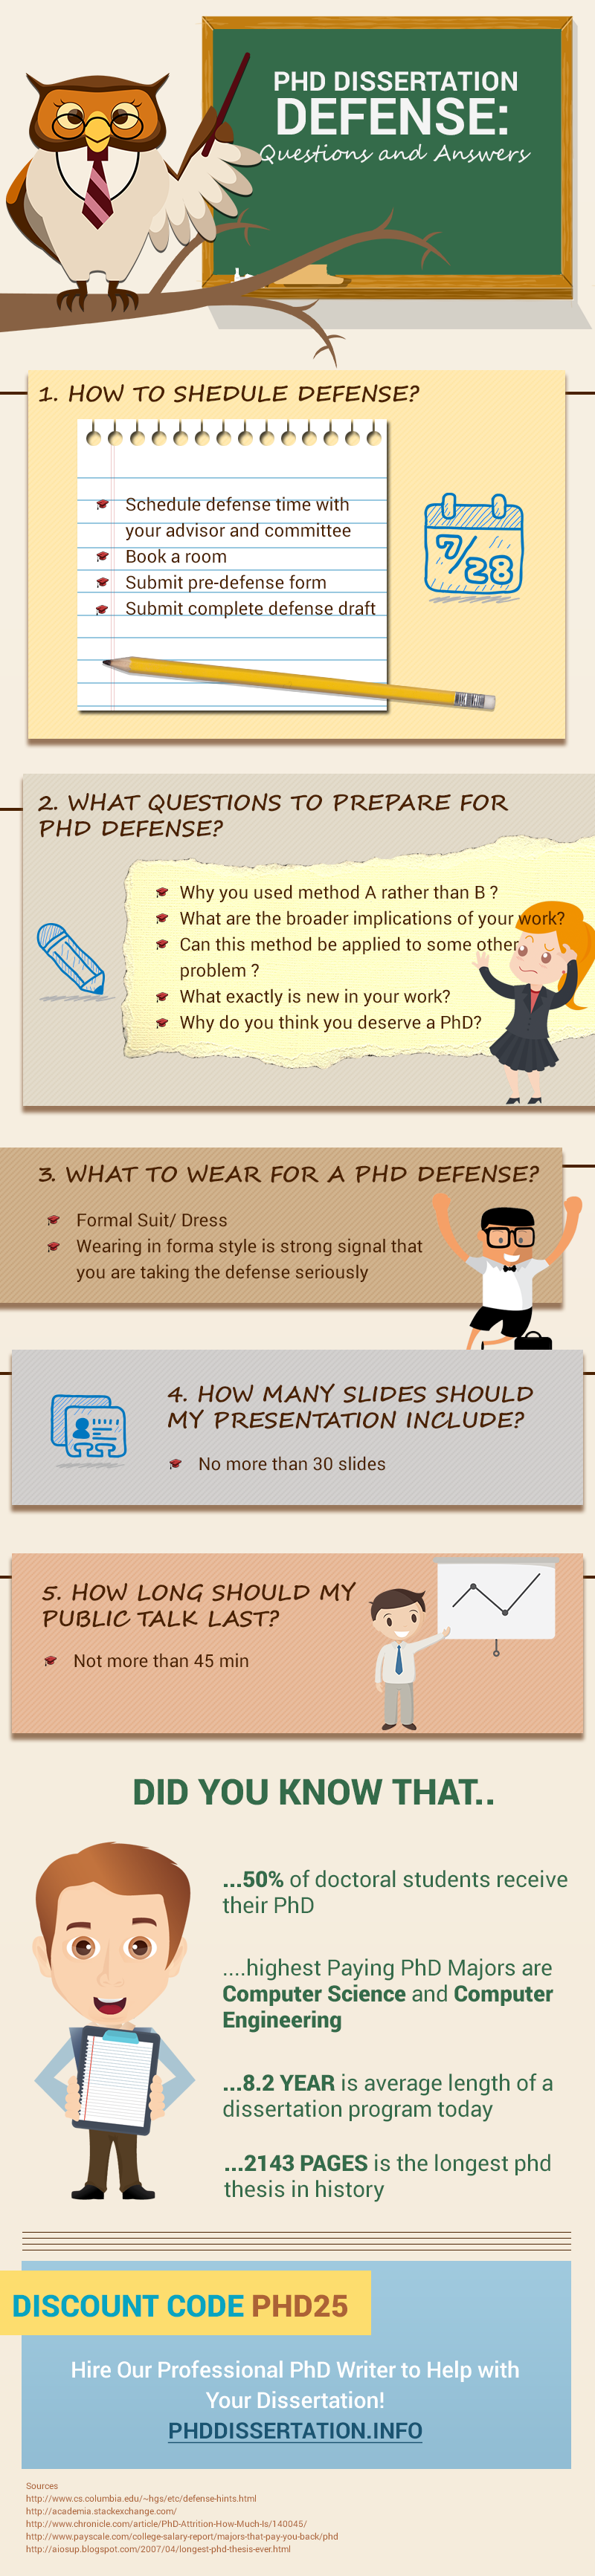 Getting help with your graduation thesis